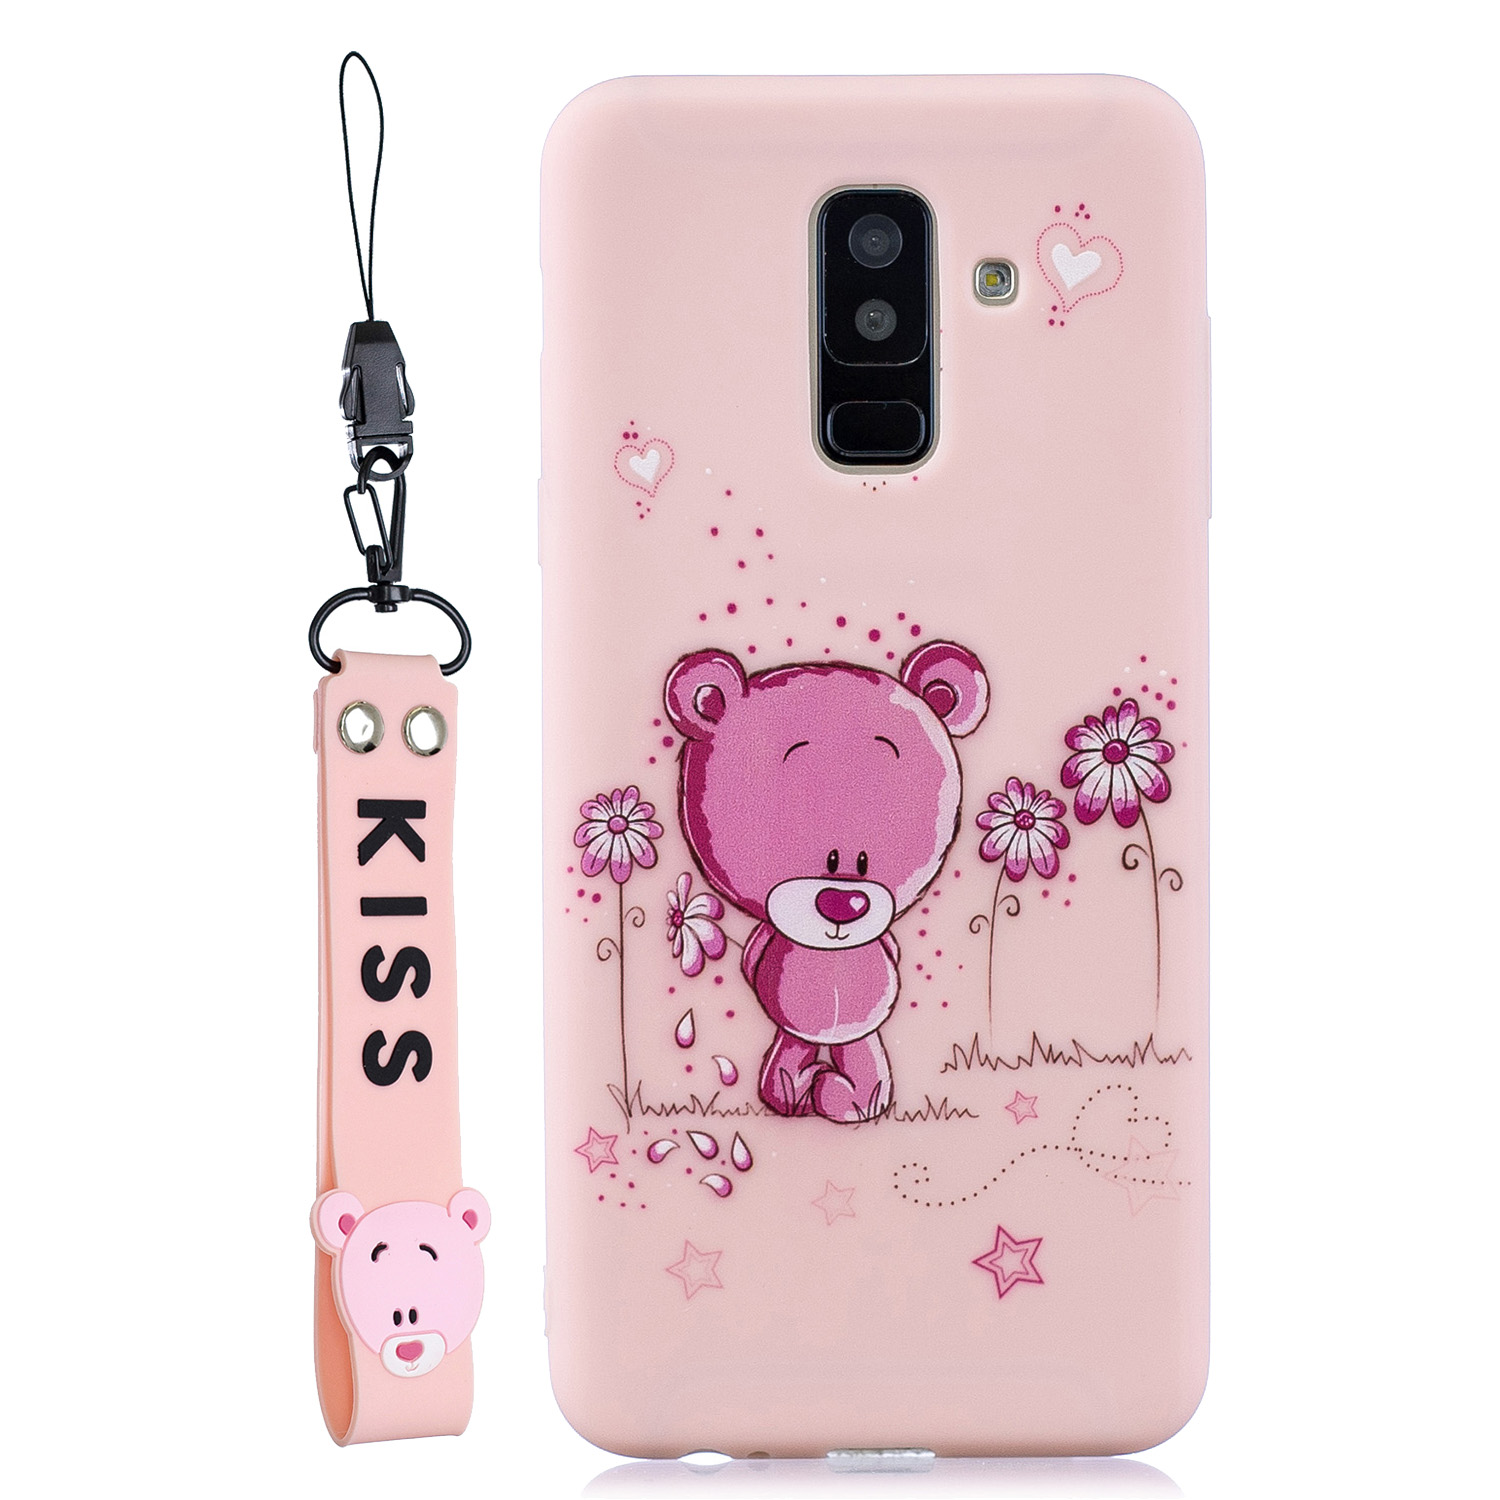 For Samsung A6 plus 2018 Cute Coloured Painted TPU Anti-scratch Non-slip Protective Cover Back Case with Lanyard Light pink